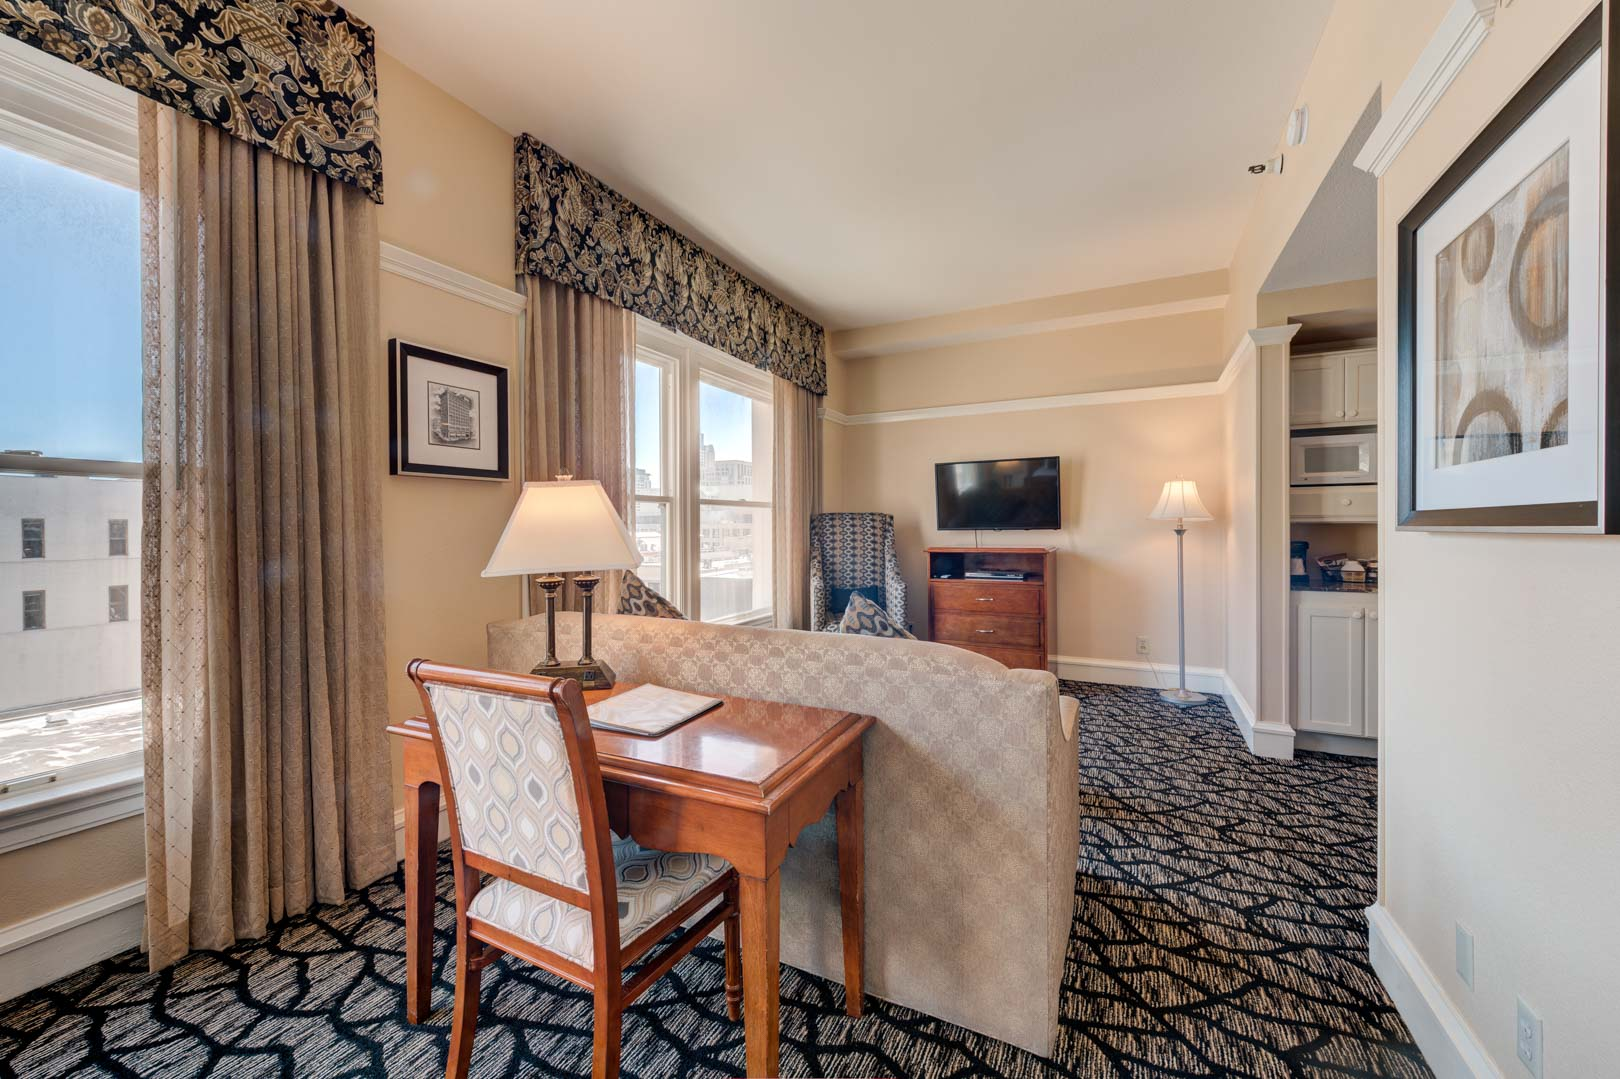 A charming living room area at VRI's Gaslamp Plaza Suites in San Diego, California.